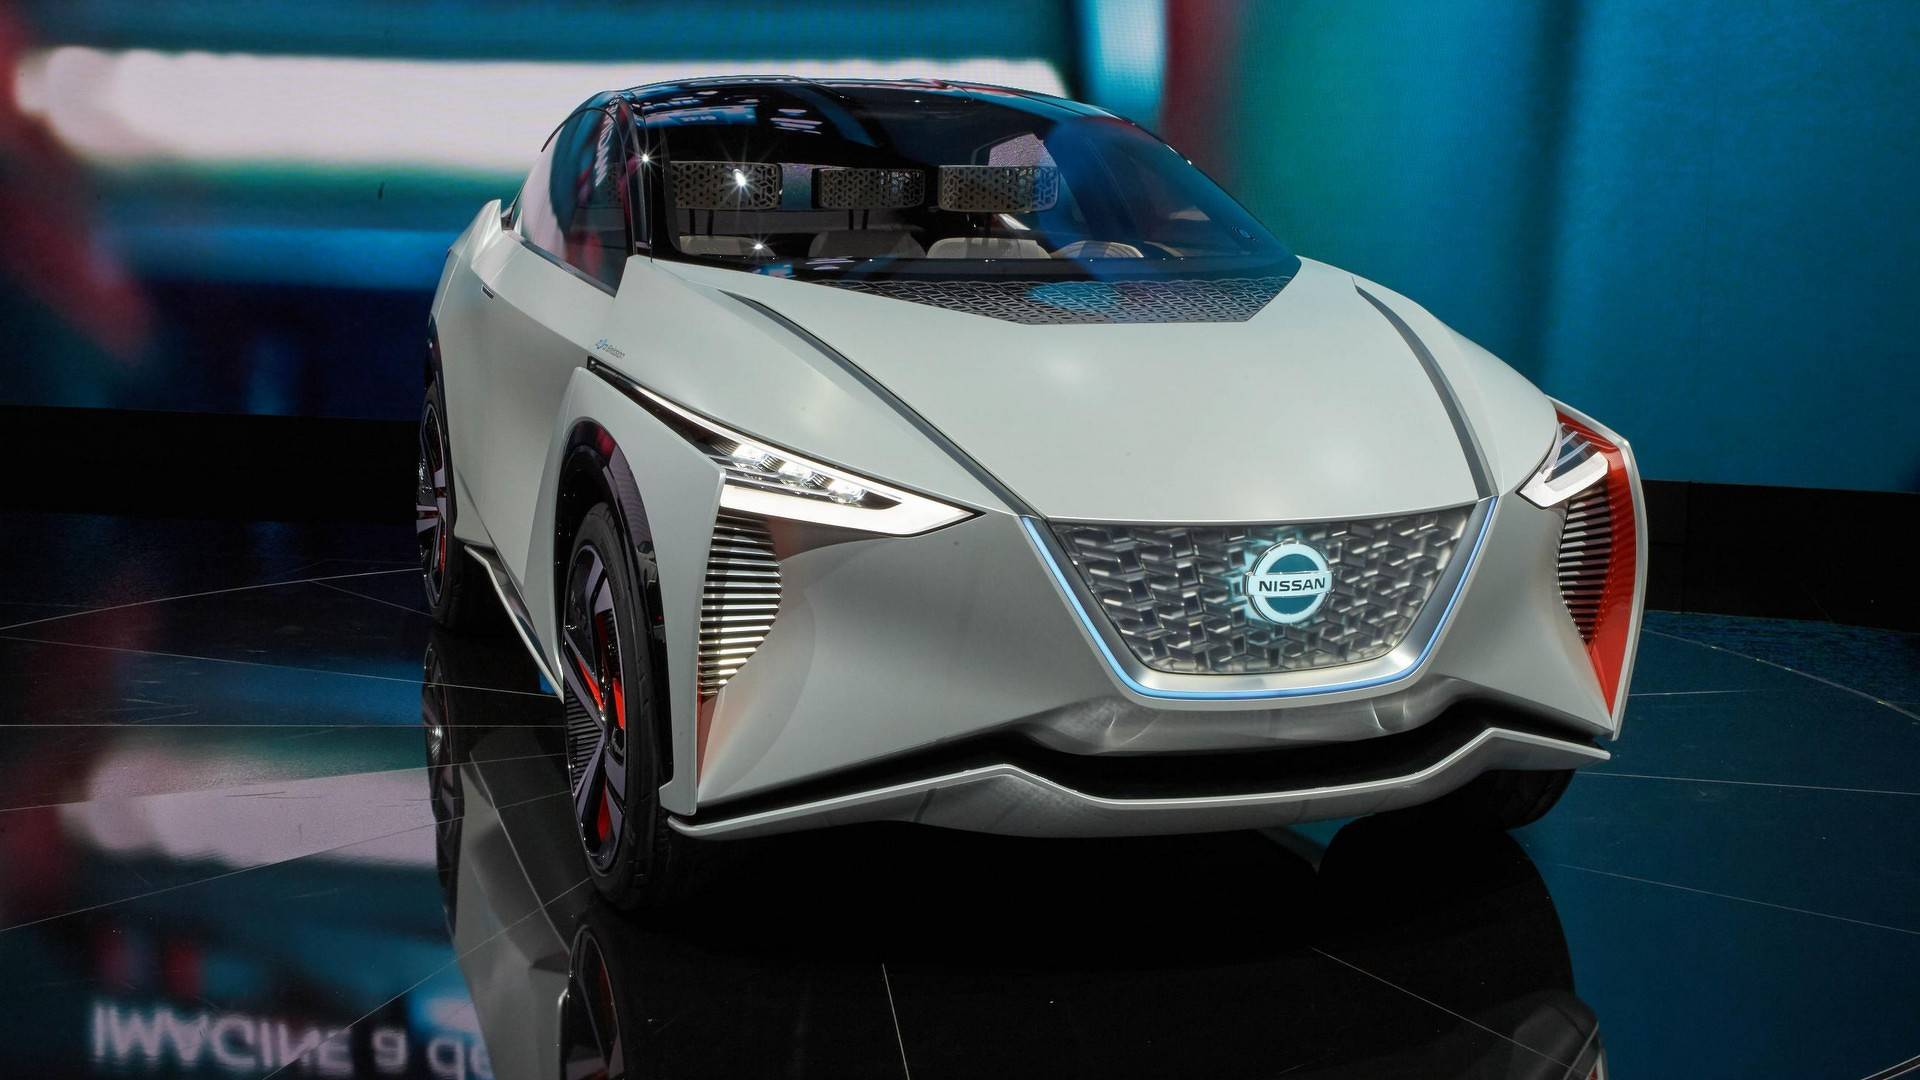 Nissan Previewed EV SUV To Dealers; 0-60 In Under 5 Seconds